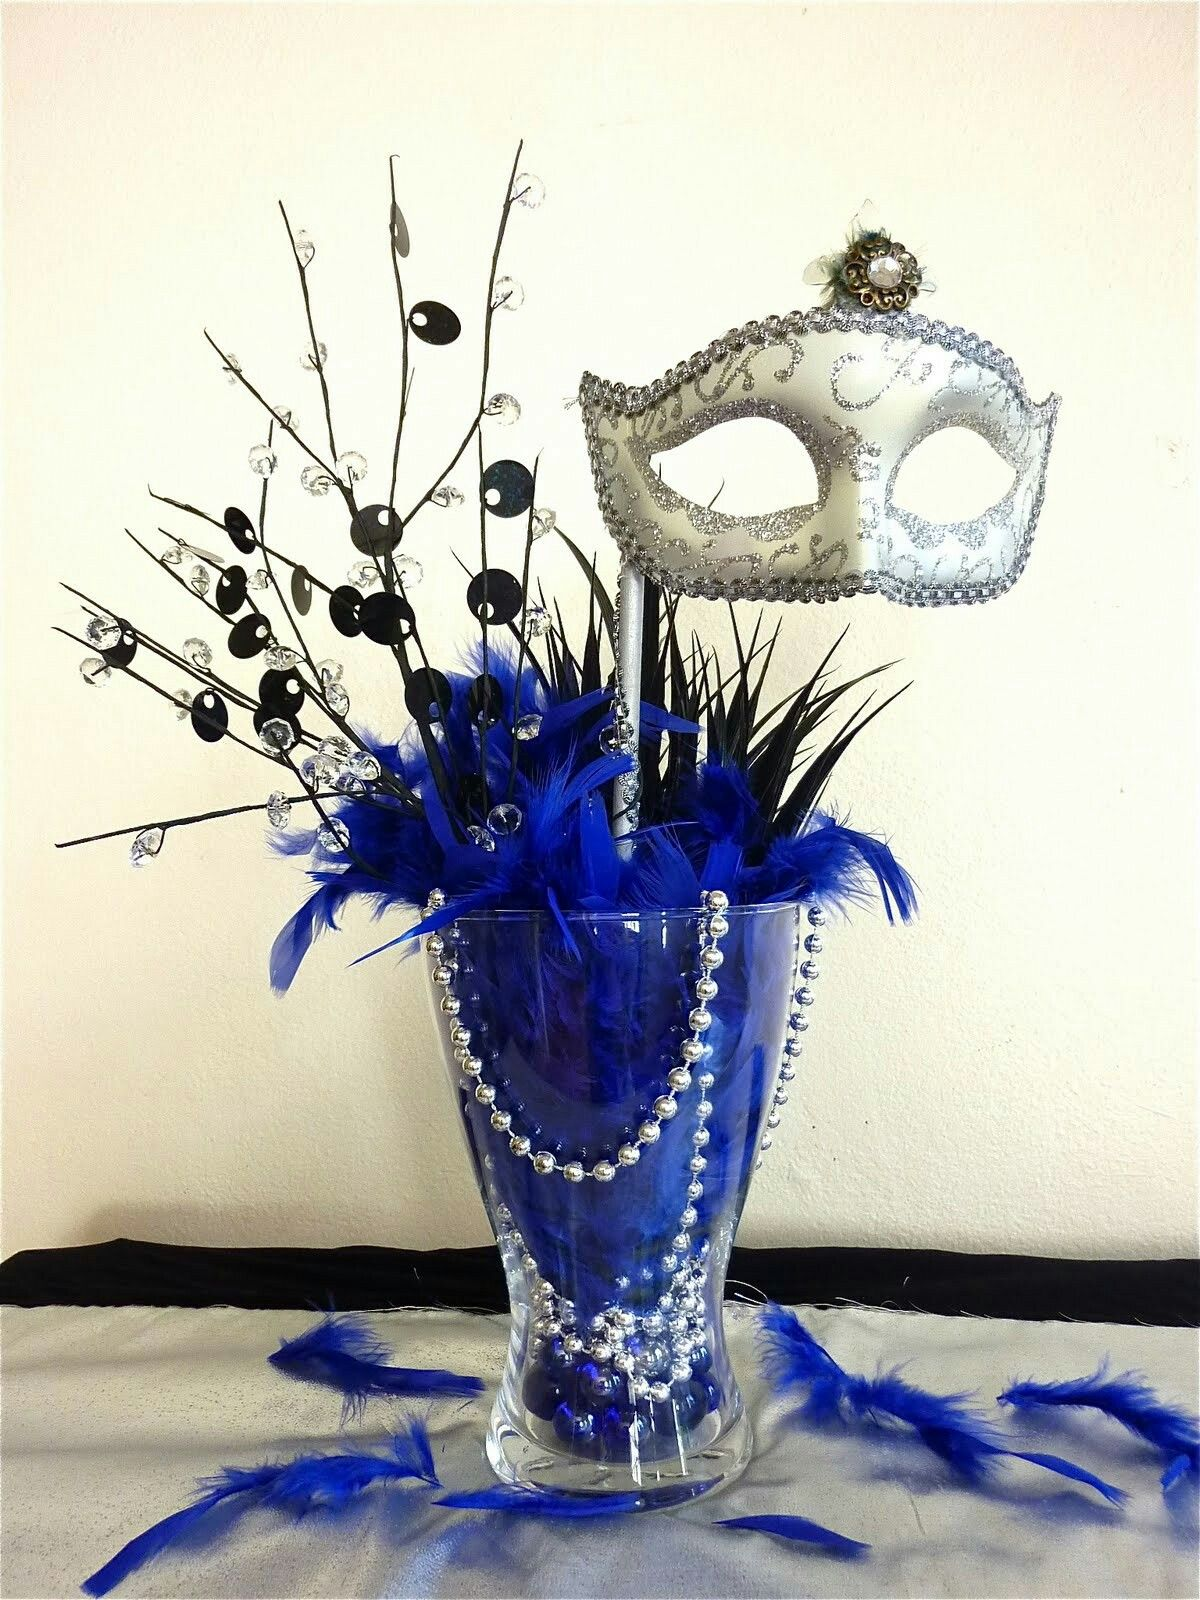 Groovy Pin By Bel Olalde On Diy Pinterest Masquerade Party Download Free Architecture Designs Scobabritishbridgeorg